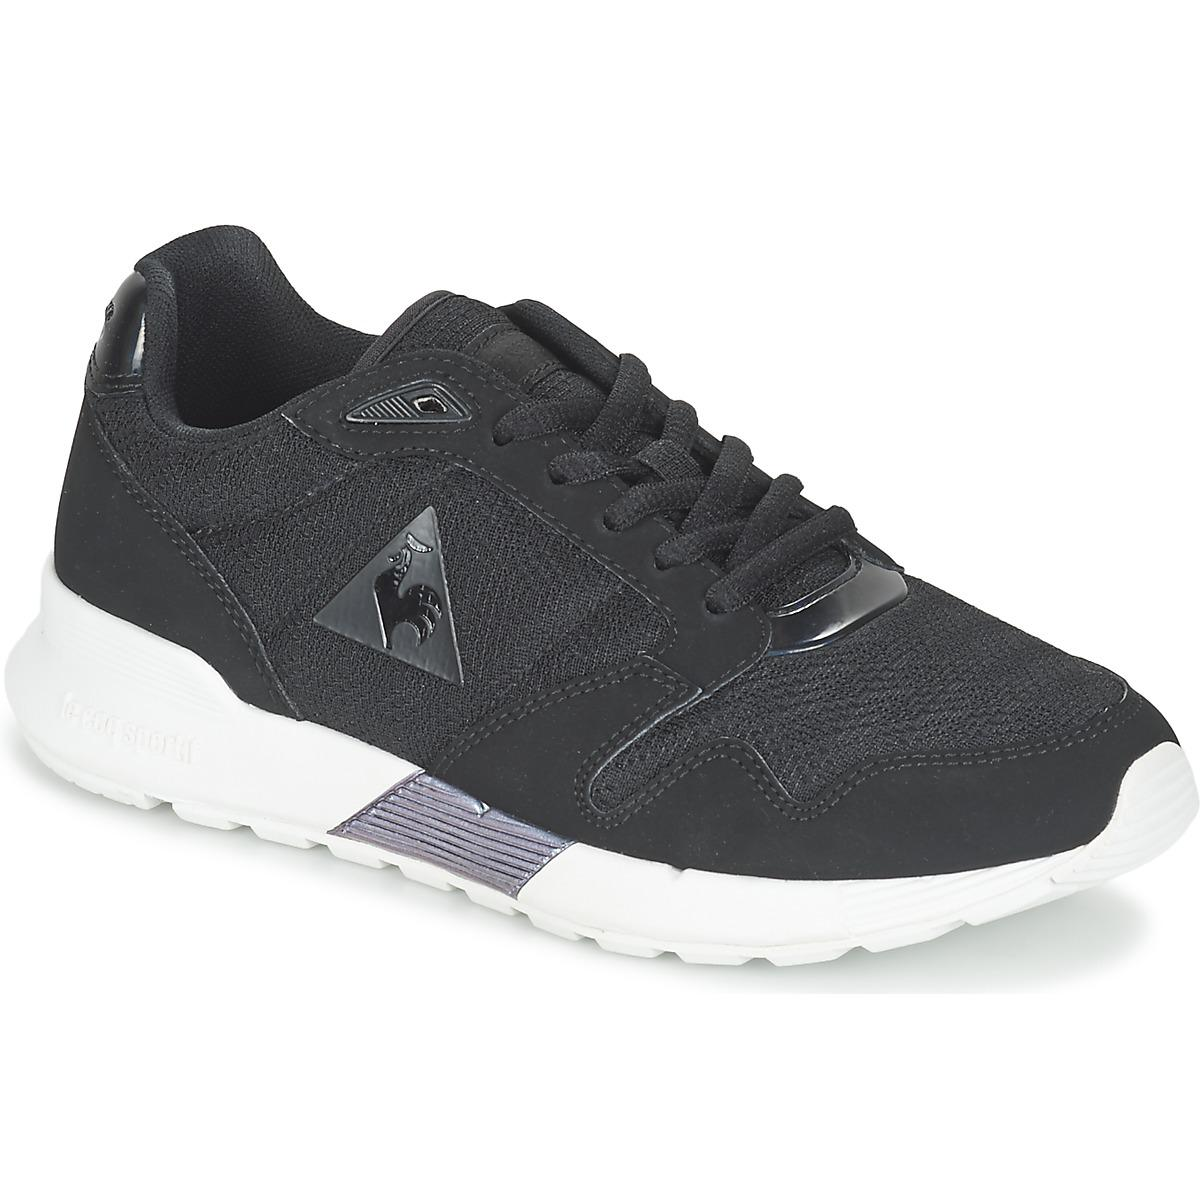 le coq sportif omega x w oil women 39 s shoes trainers in black in black lyst. Black Bedroom Furniture Sets. Home Design Ideas